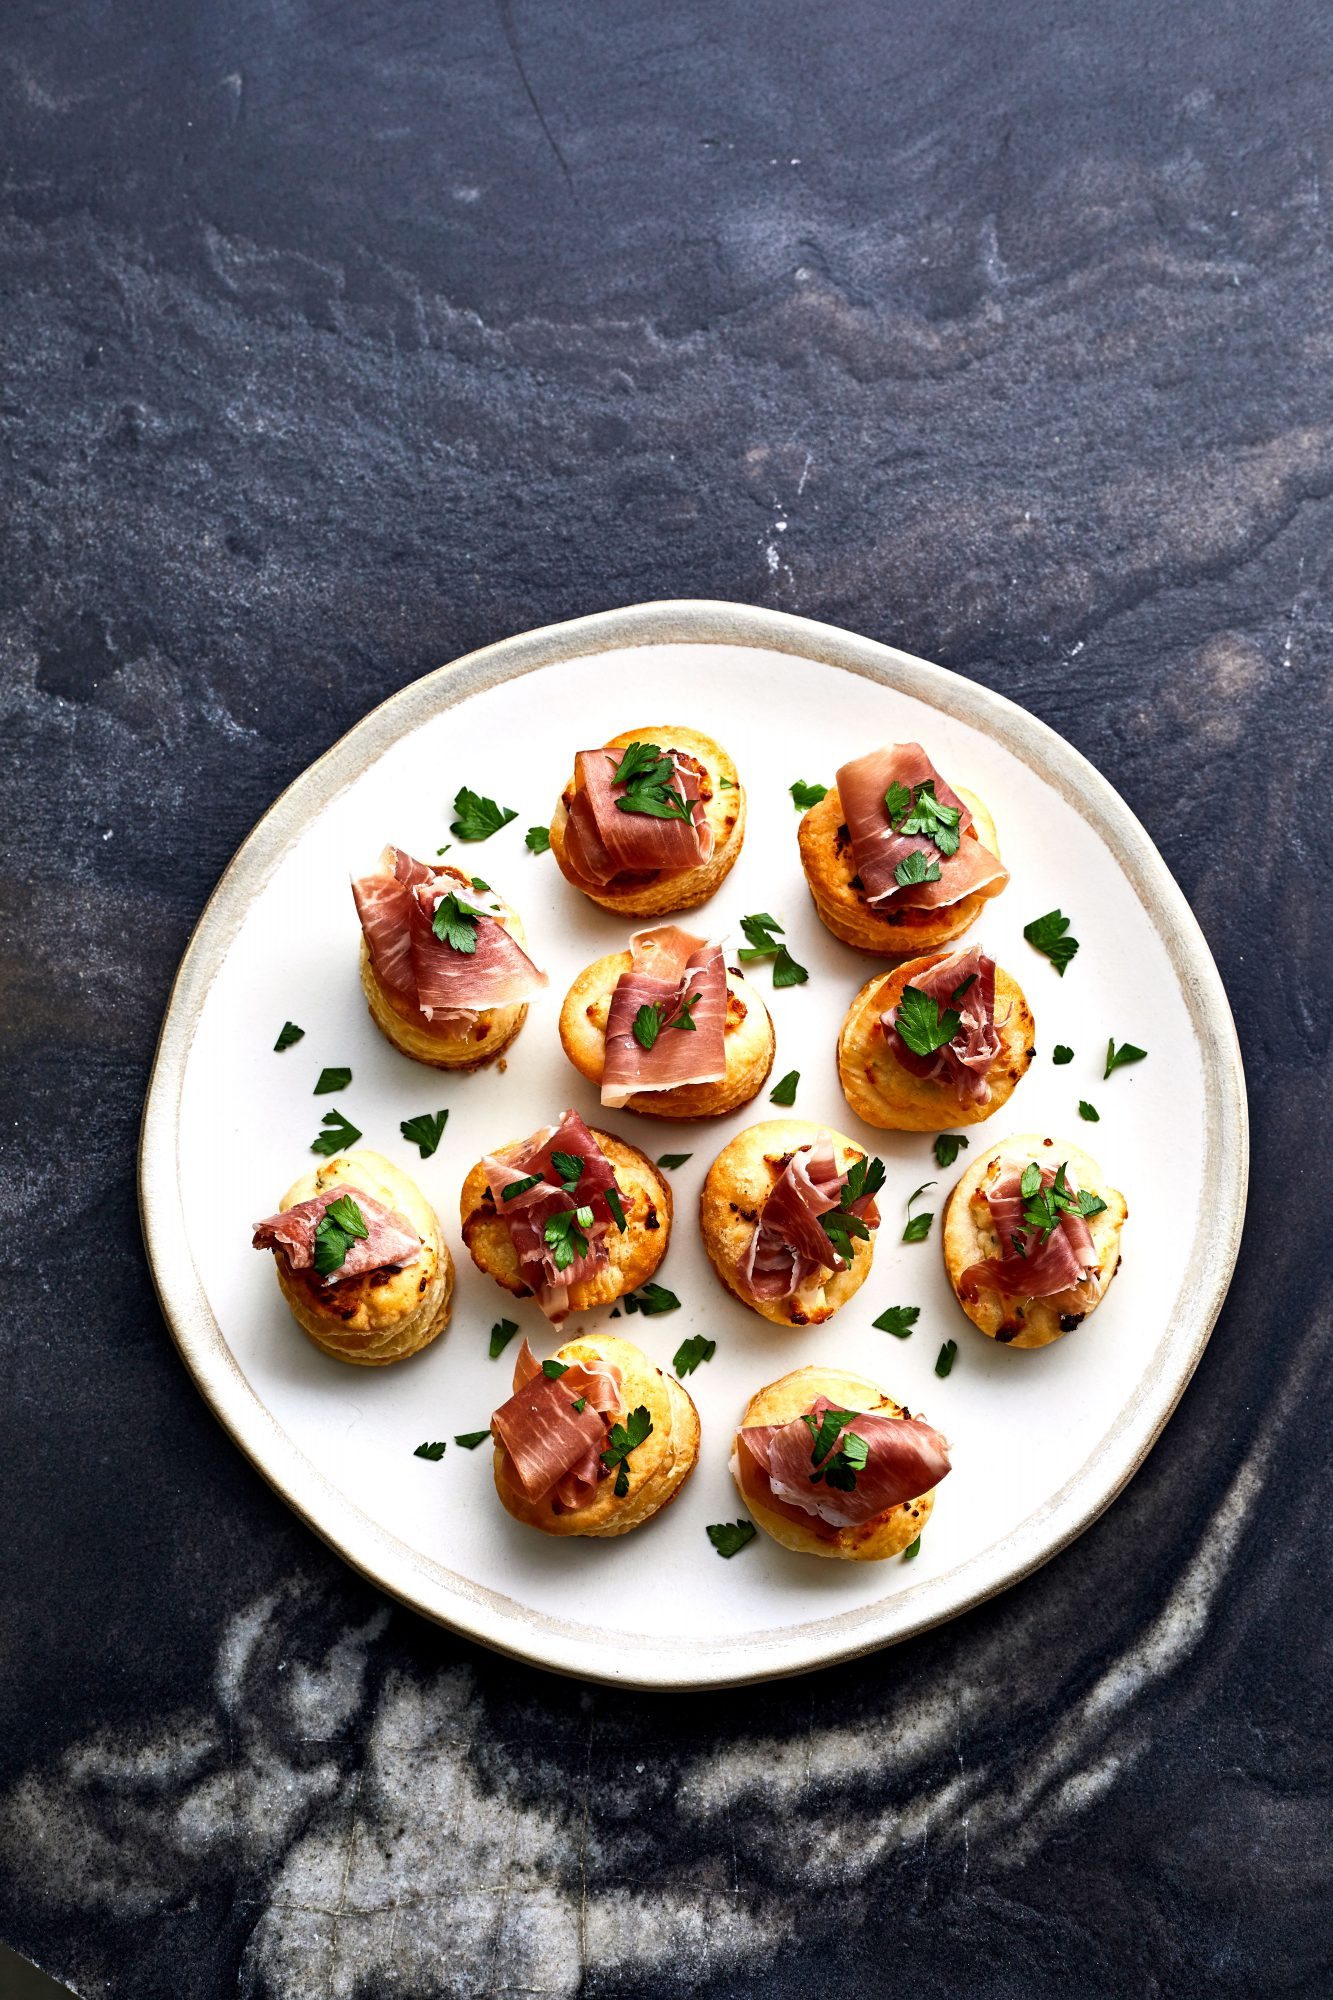 Cheesy Garlic-Herb-and-Ham Bites